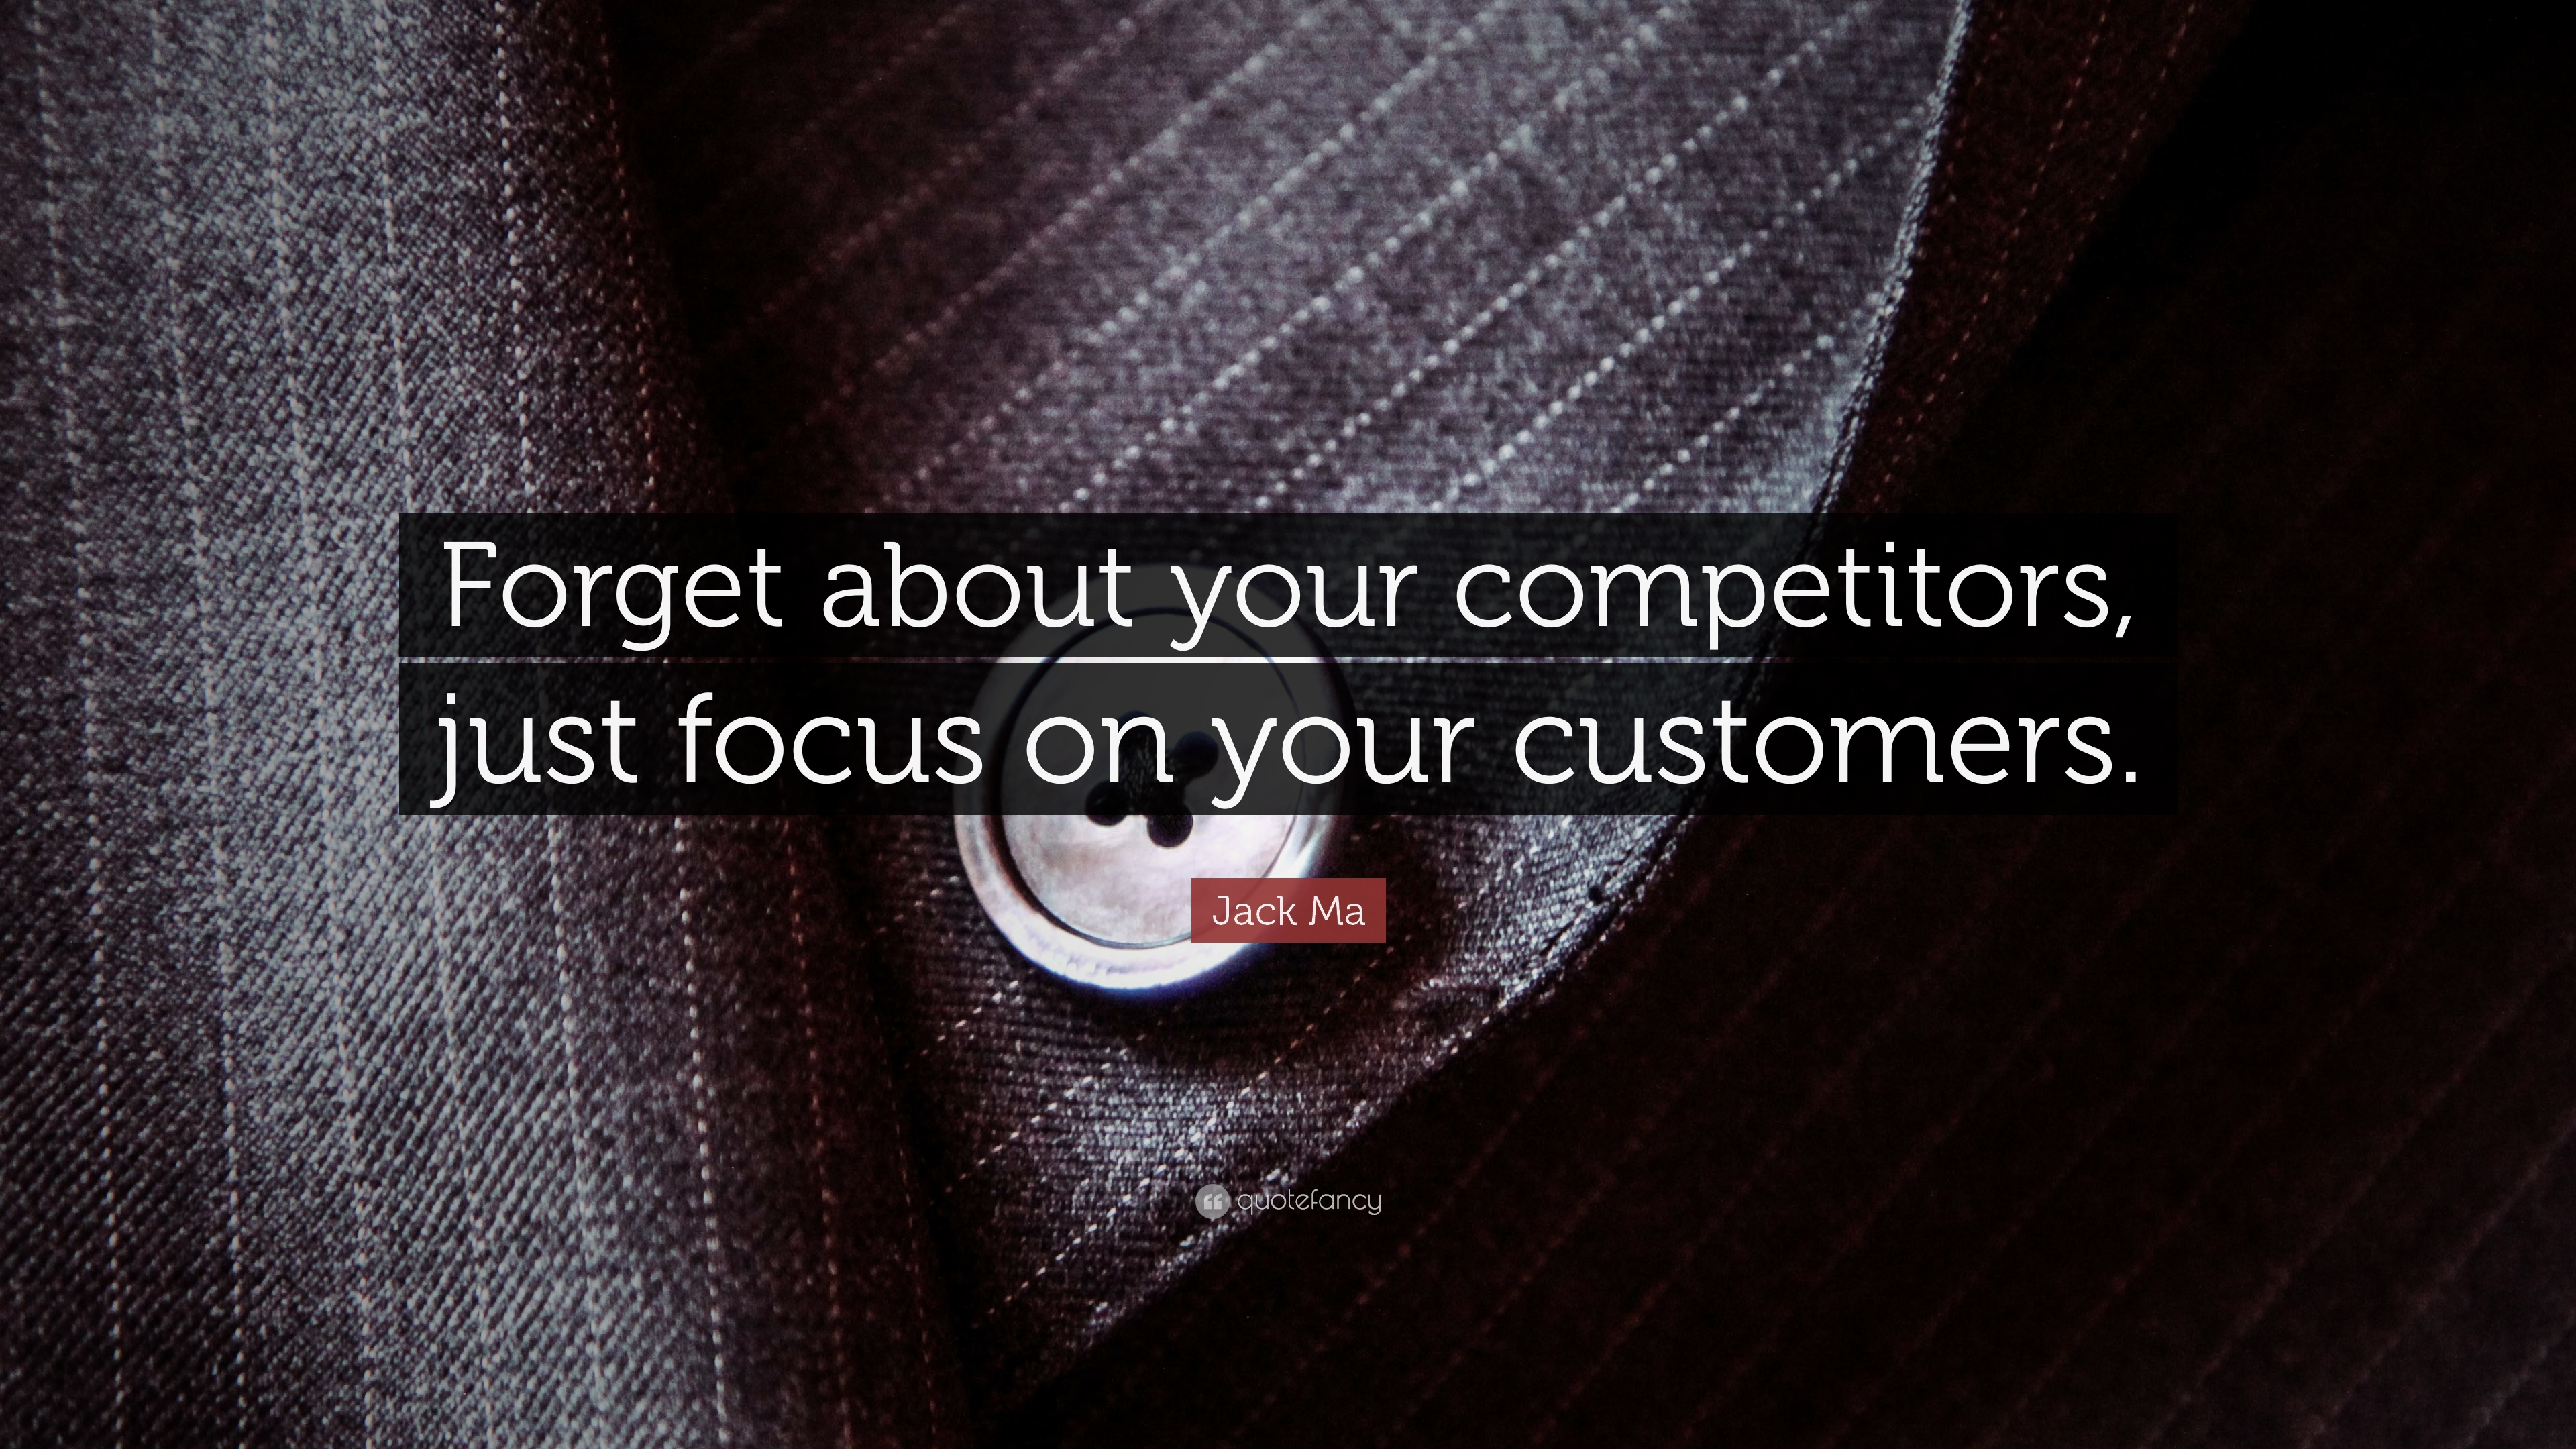 Success Quotes Desktop Wallpaper Jack Ma Quote Forget About Your Competitors Just Focus